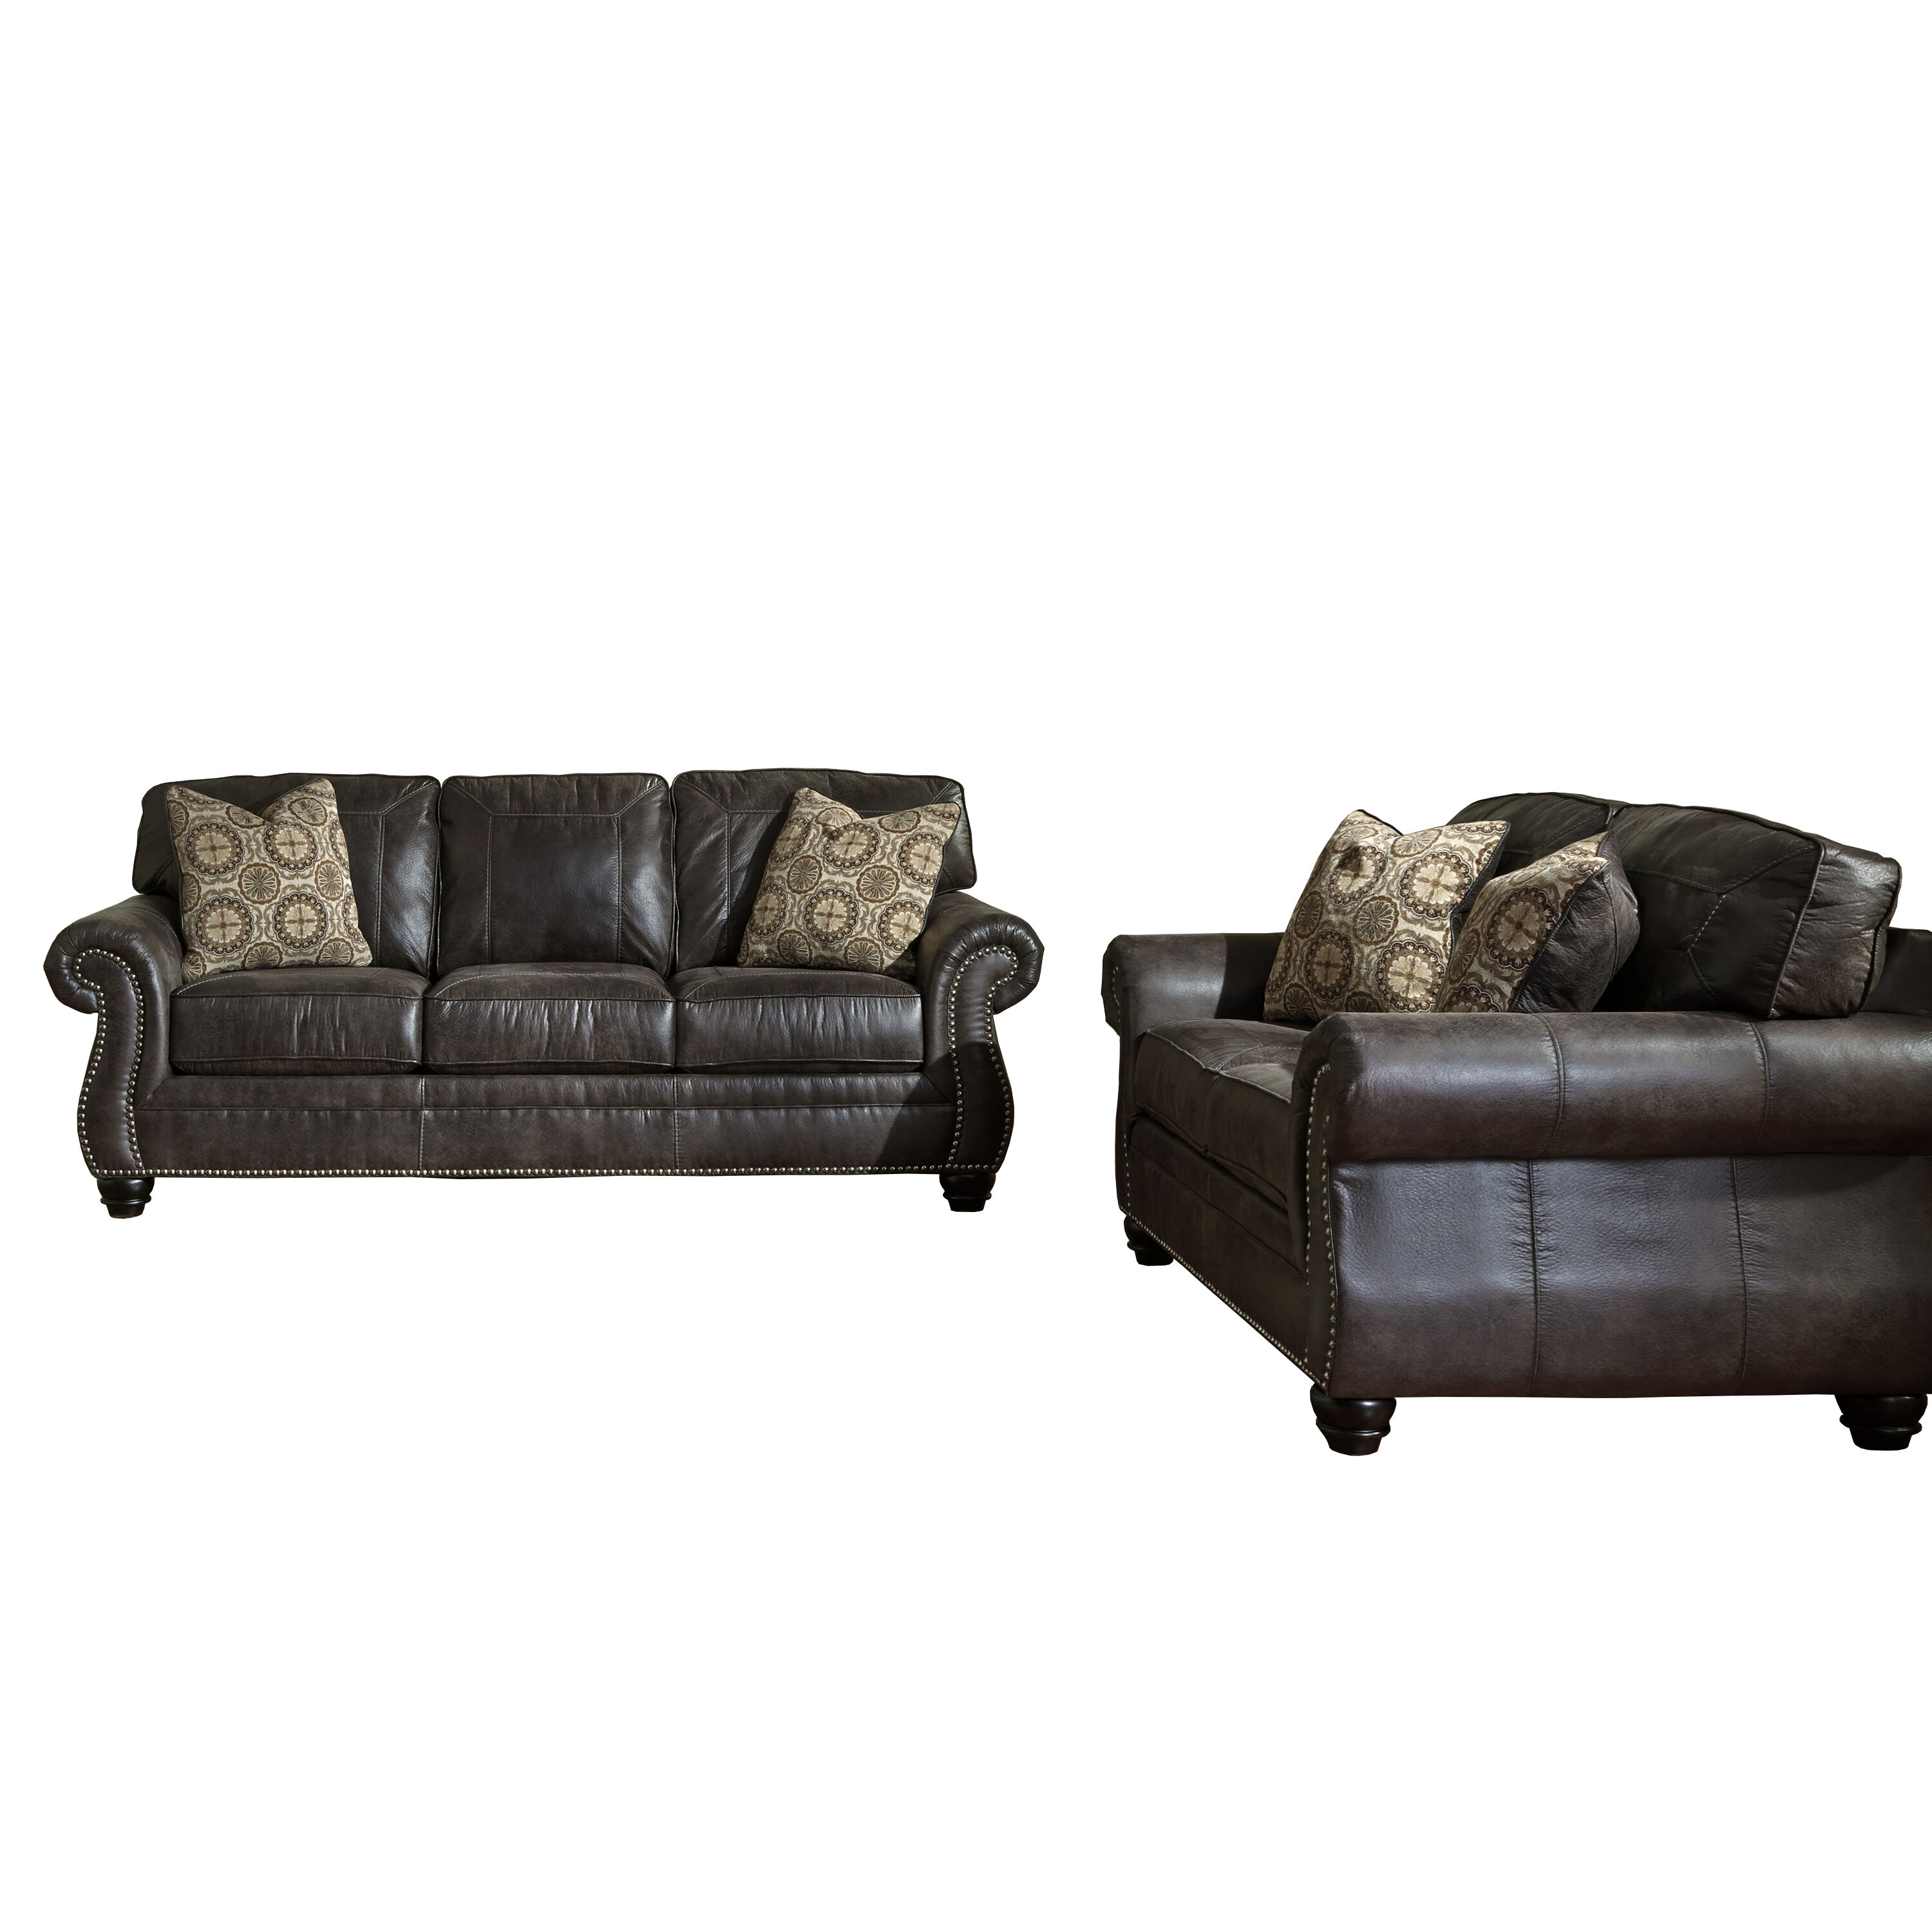 ... Our Benchcraft Breville Living Room Set In Charcoal Faux Leather Is On  Sale Now.